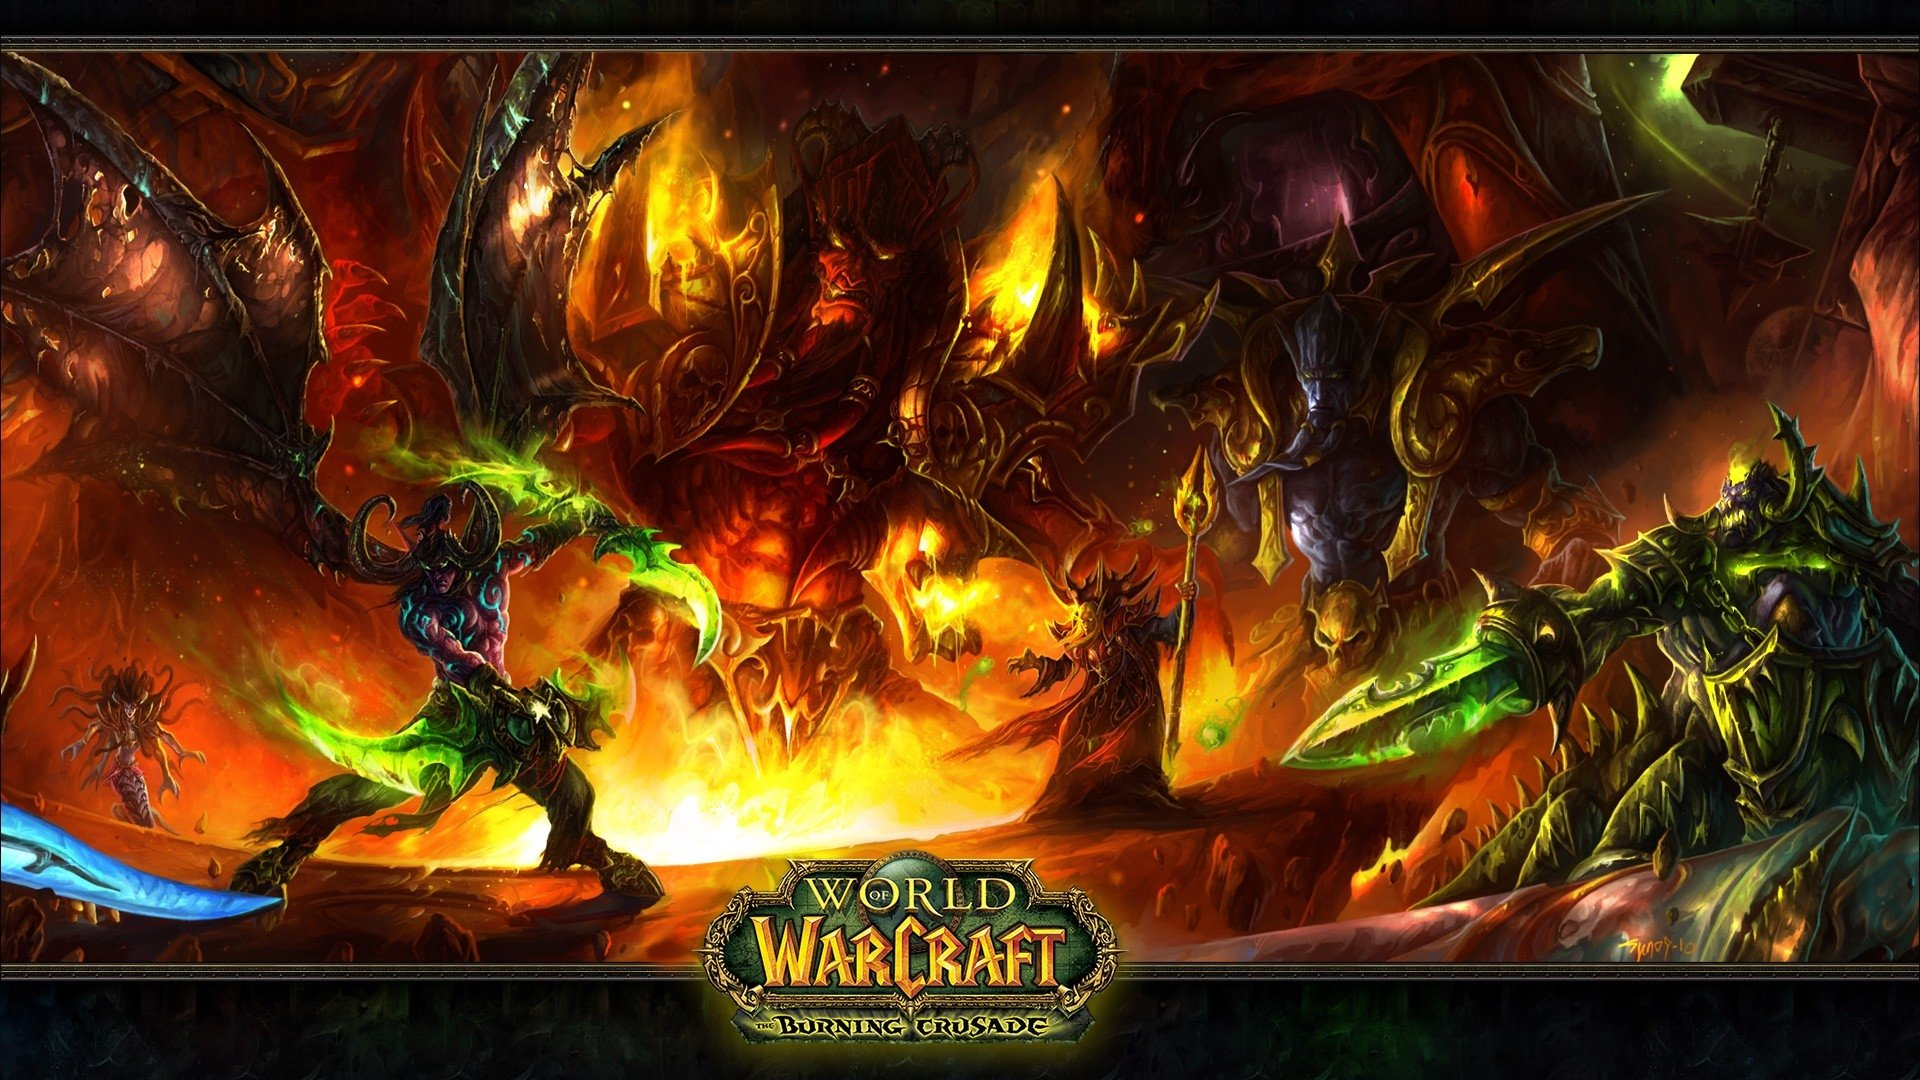 Video Game - World Of Warcraft  Lady Vashj Illidan Stormrage Kil'jaeden (World Of Warcraft) Kael'thas Sunstrider Magtheridon (World Of Warcraft) Wallpaper